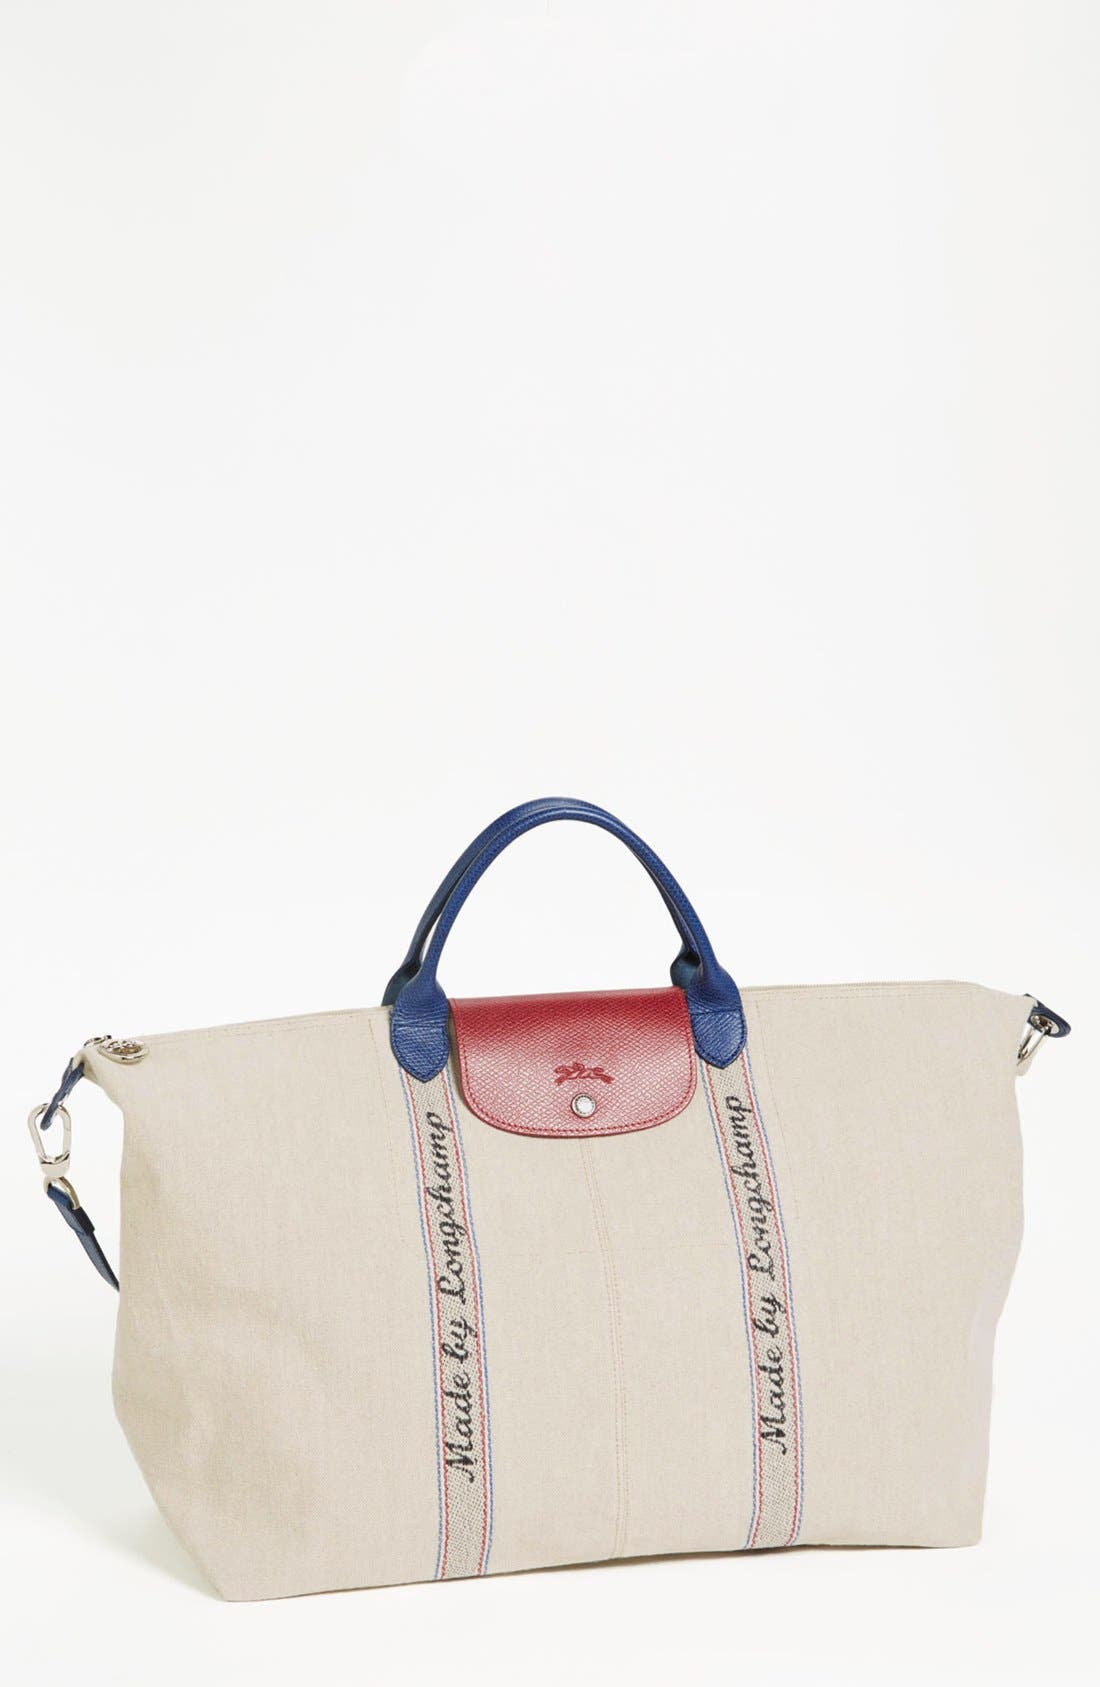 Alternate Image 1 Selected - Longchamp 'Made by Longchamp' Travel Tote